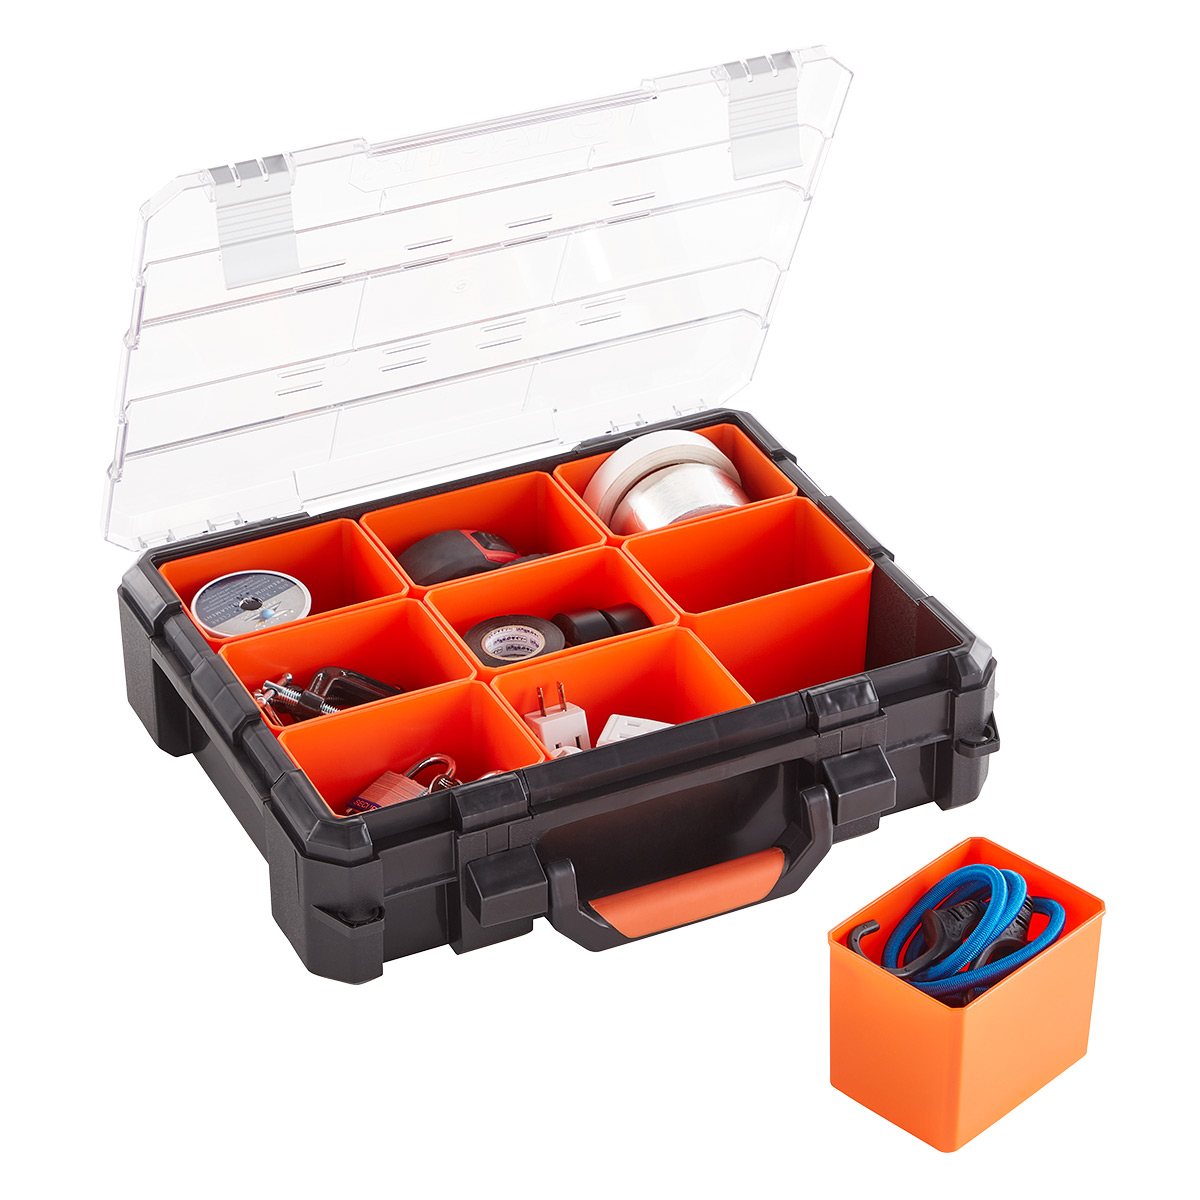 Heavy-Duty Organizer with Removable Bins